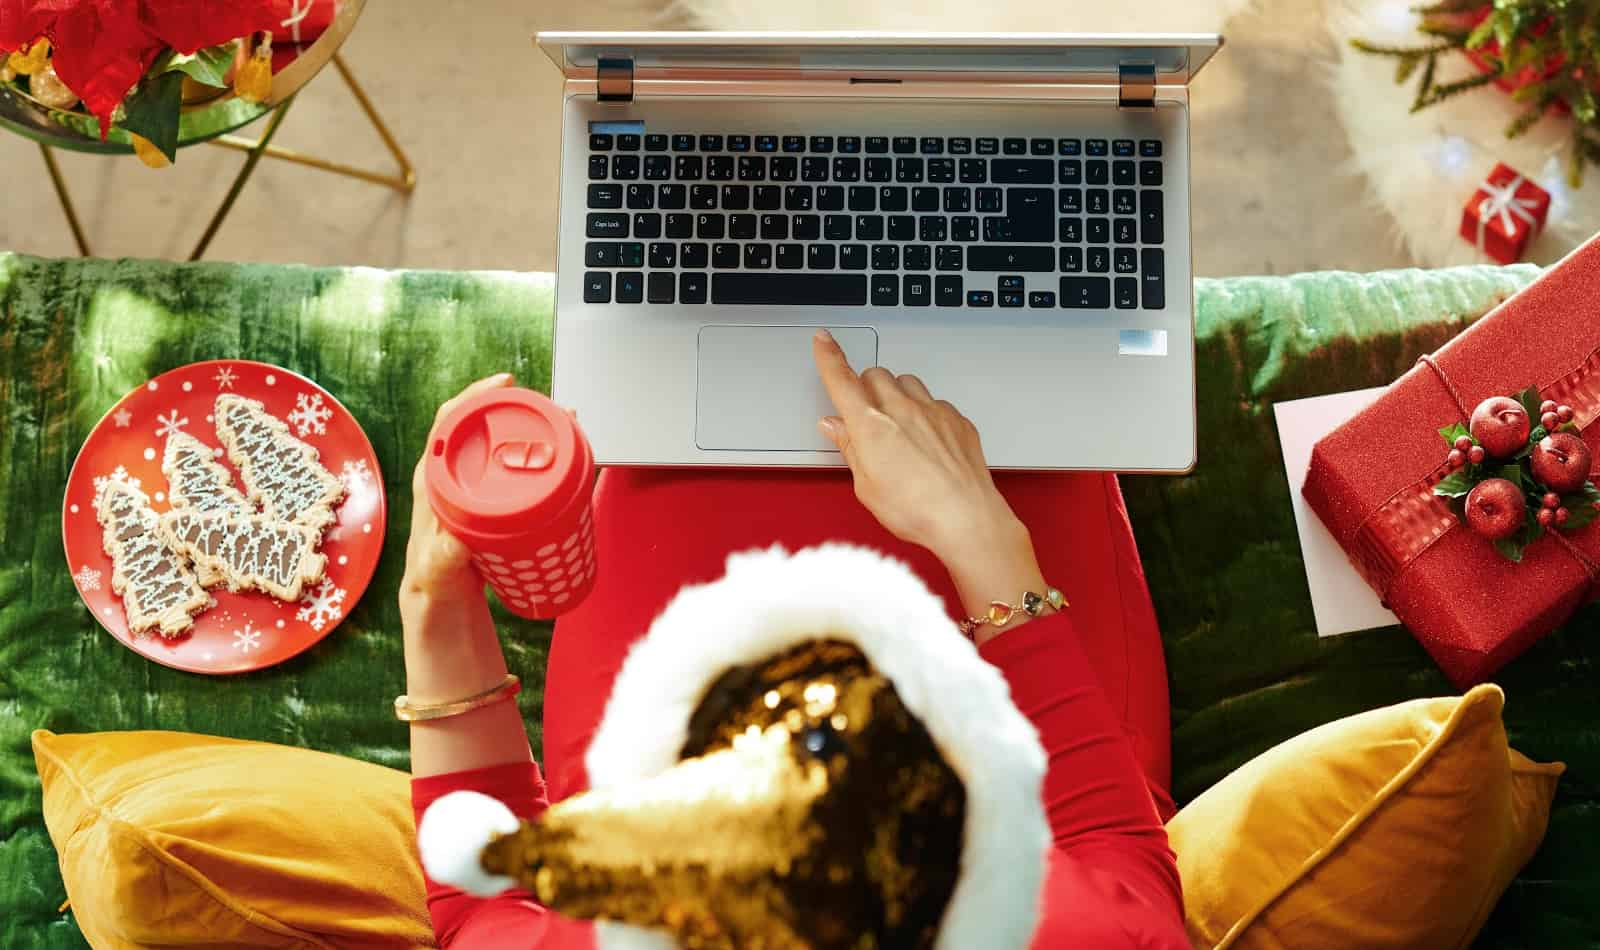 Think Christmas is cancelled just because you can't get together with family in person? Think again! Check out 5 tips to have an amazing virtual holiday celebration this year.